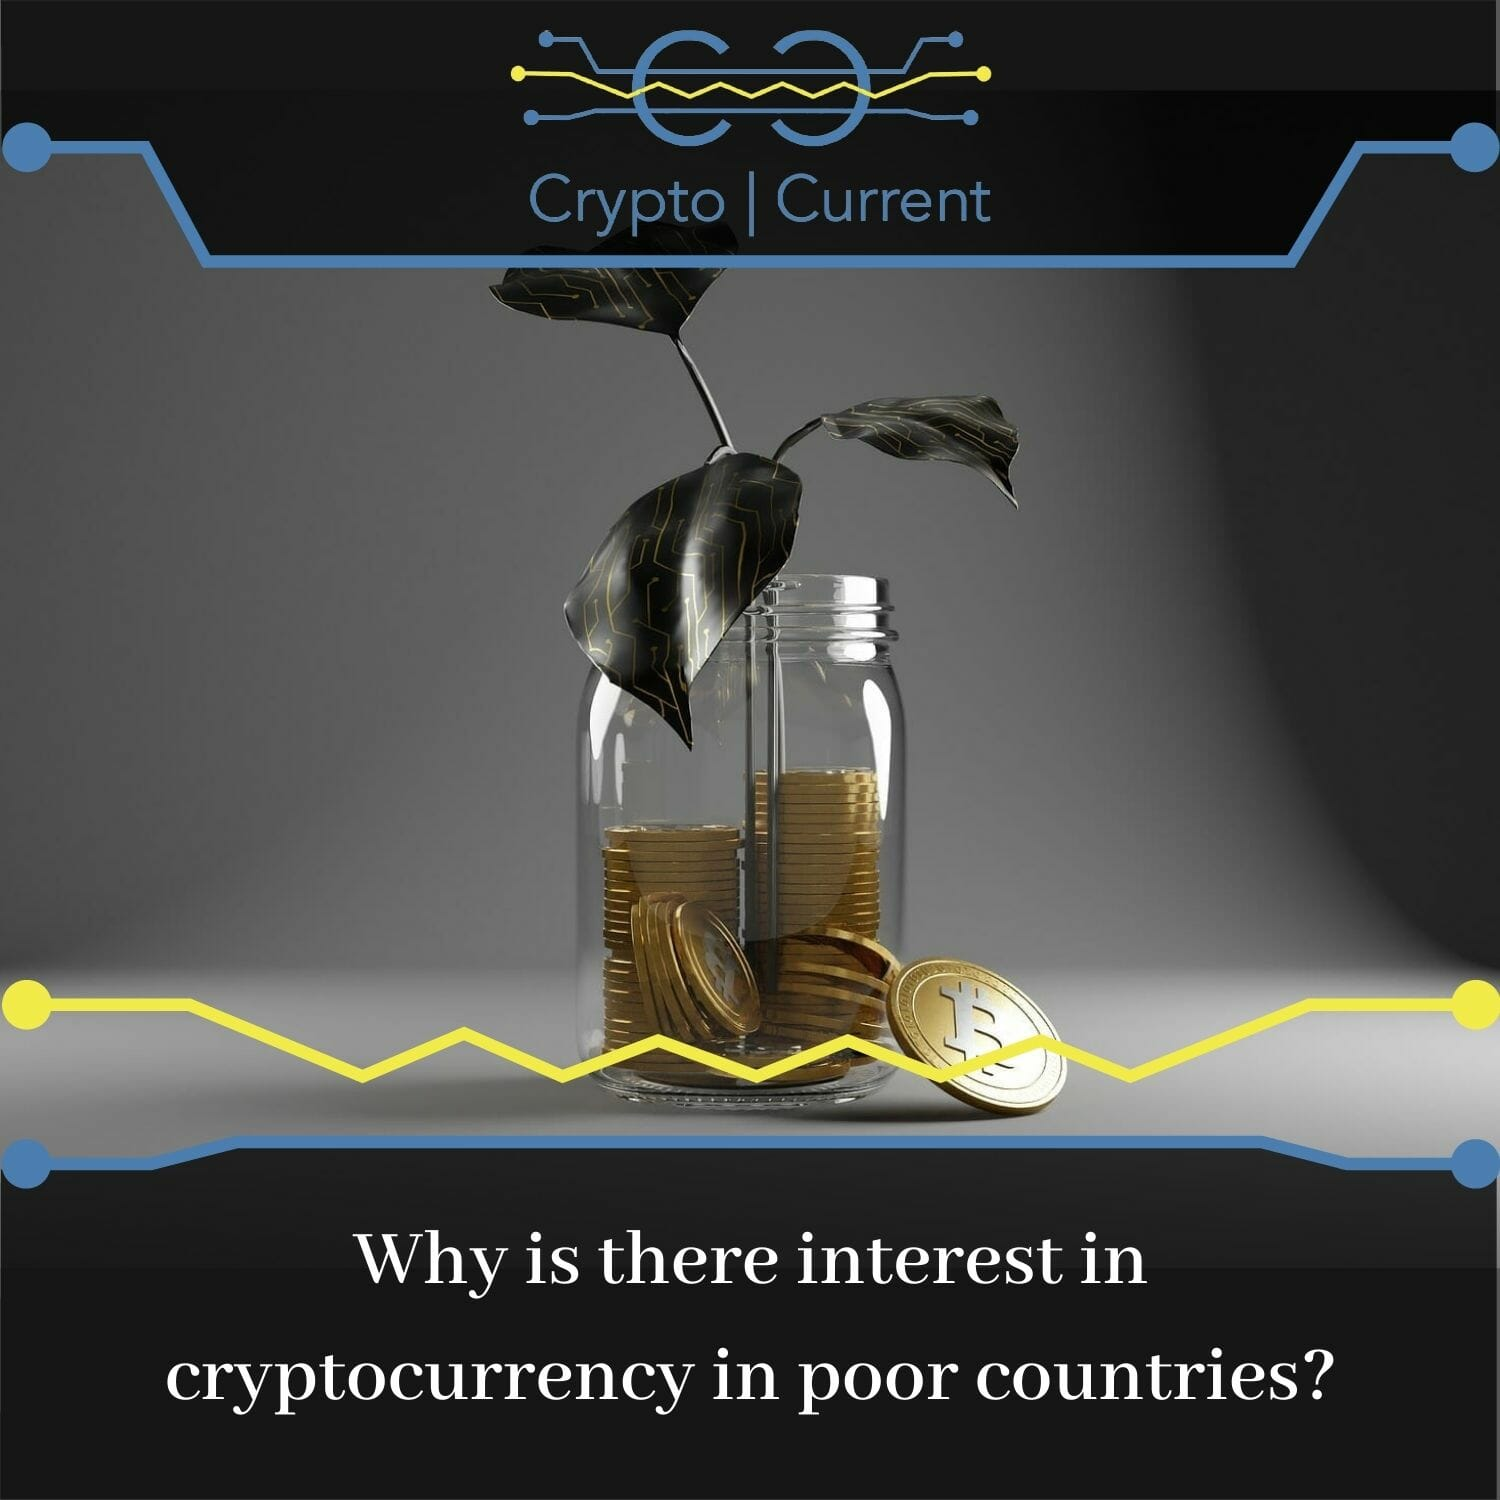 Why is there interest in cryptocurrency in poor countries?